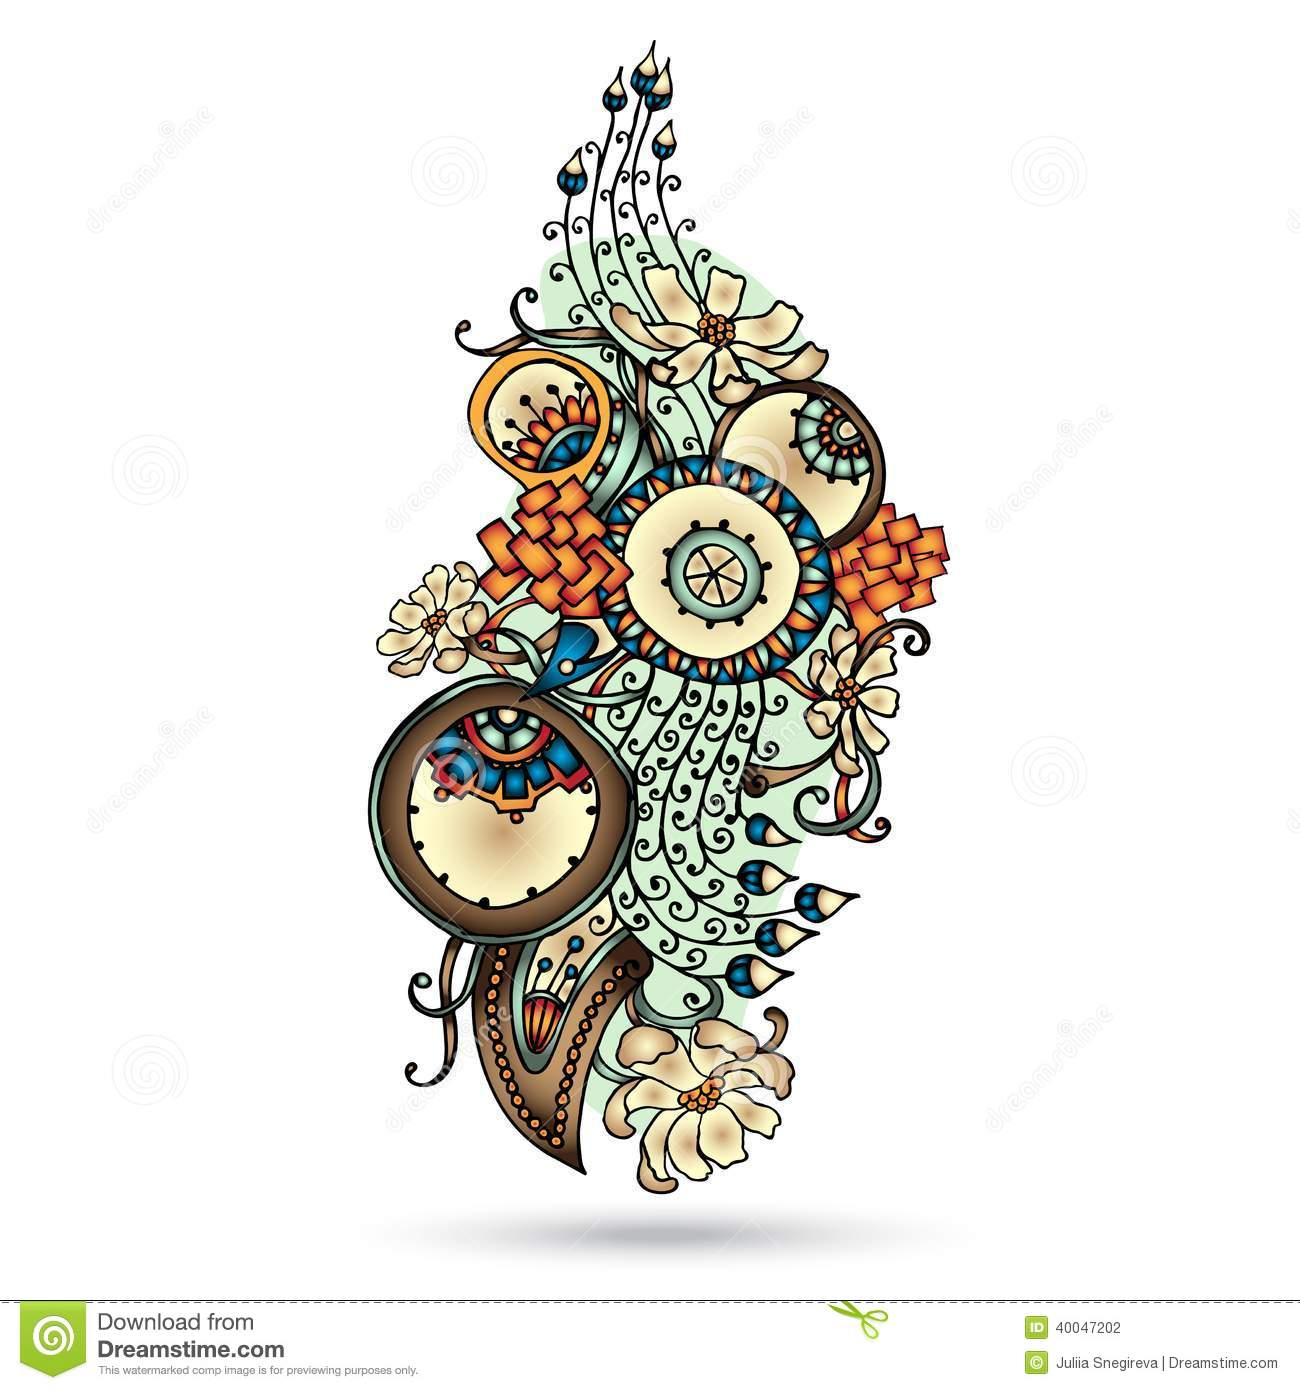 Abstract Flower Background With Decoration Elements For: Henna Paisley Mehndi Abstract Vector Element. Stock Vector